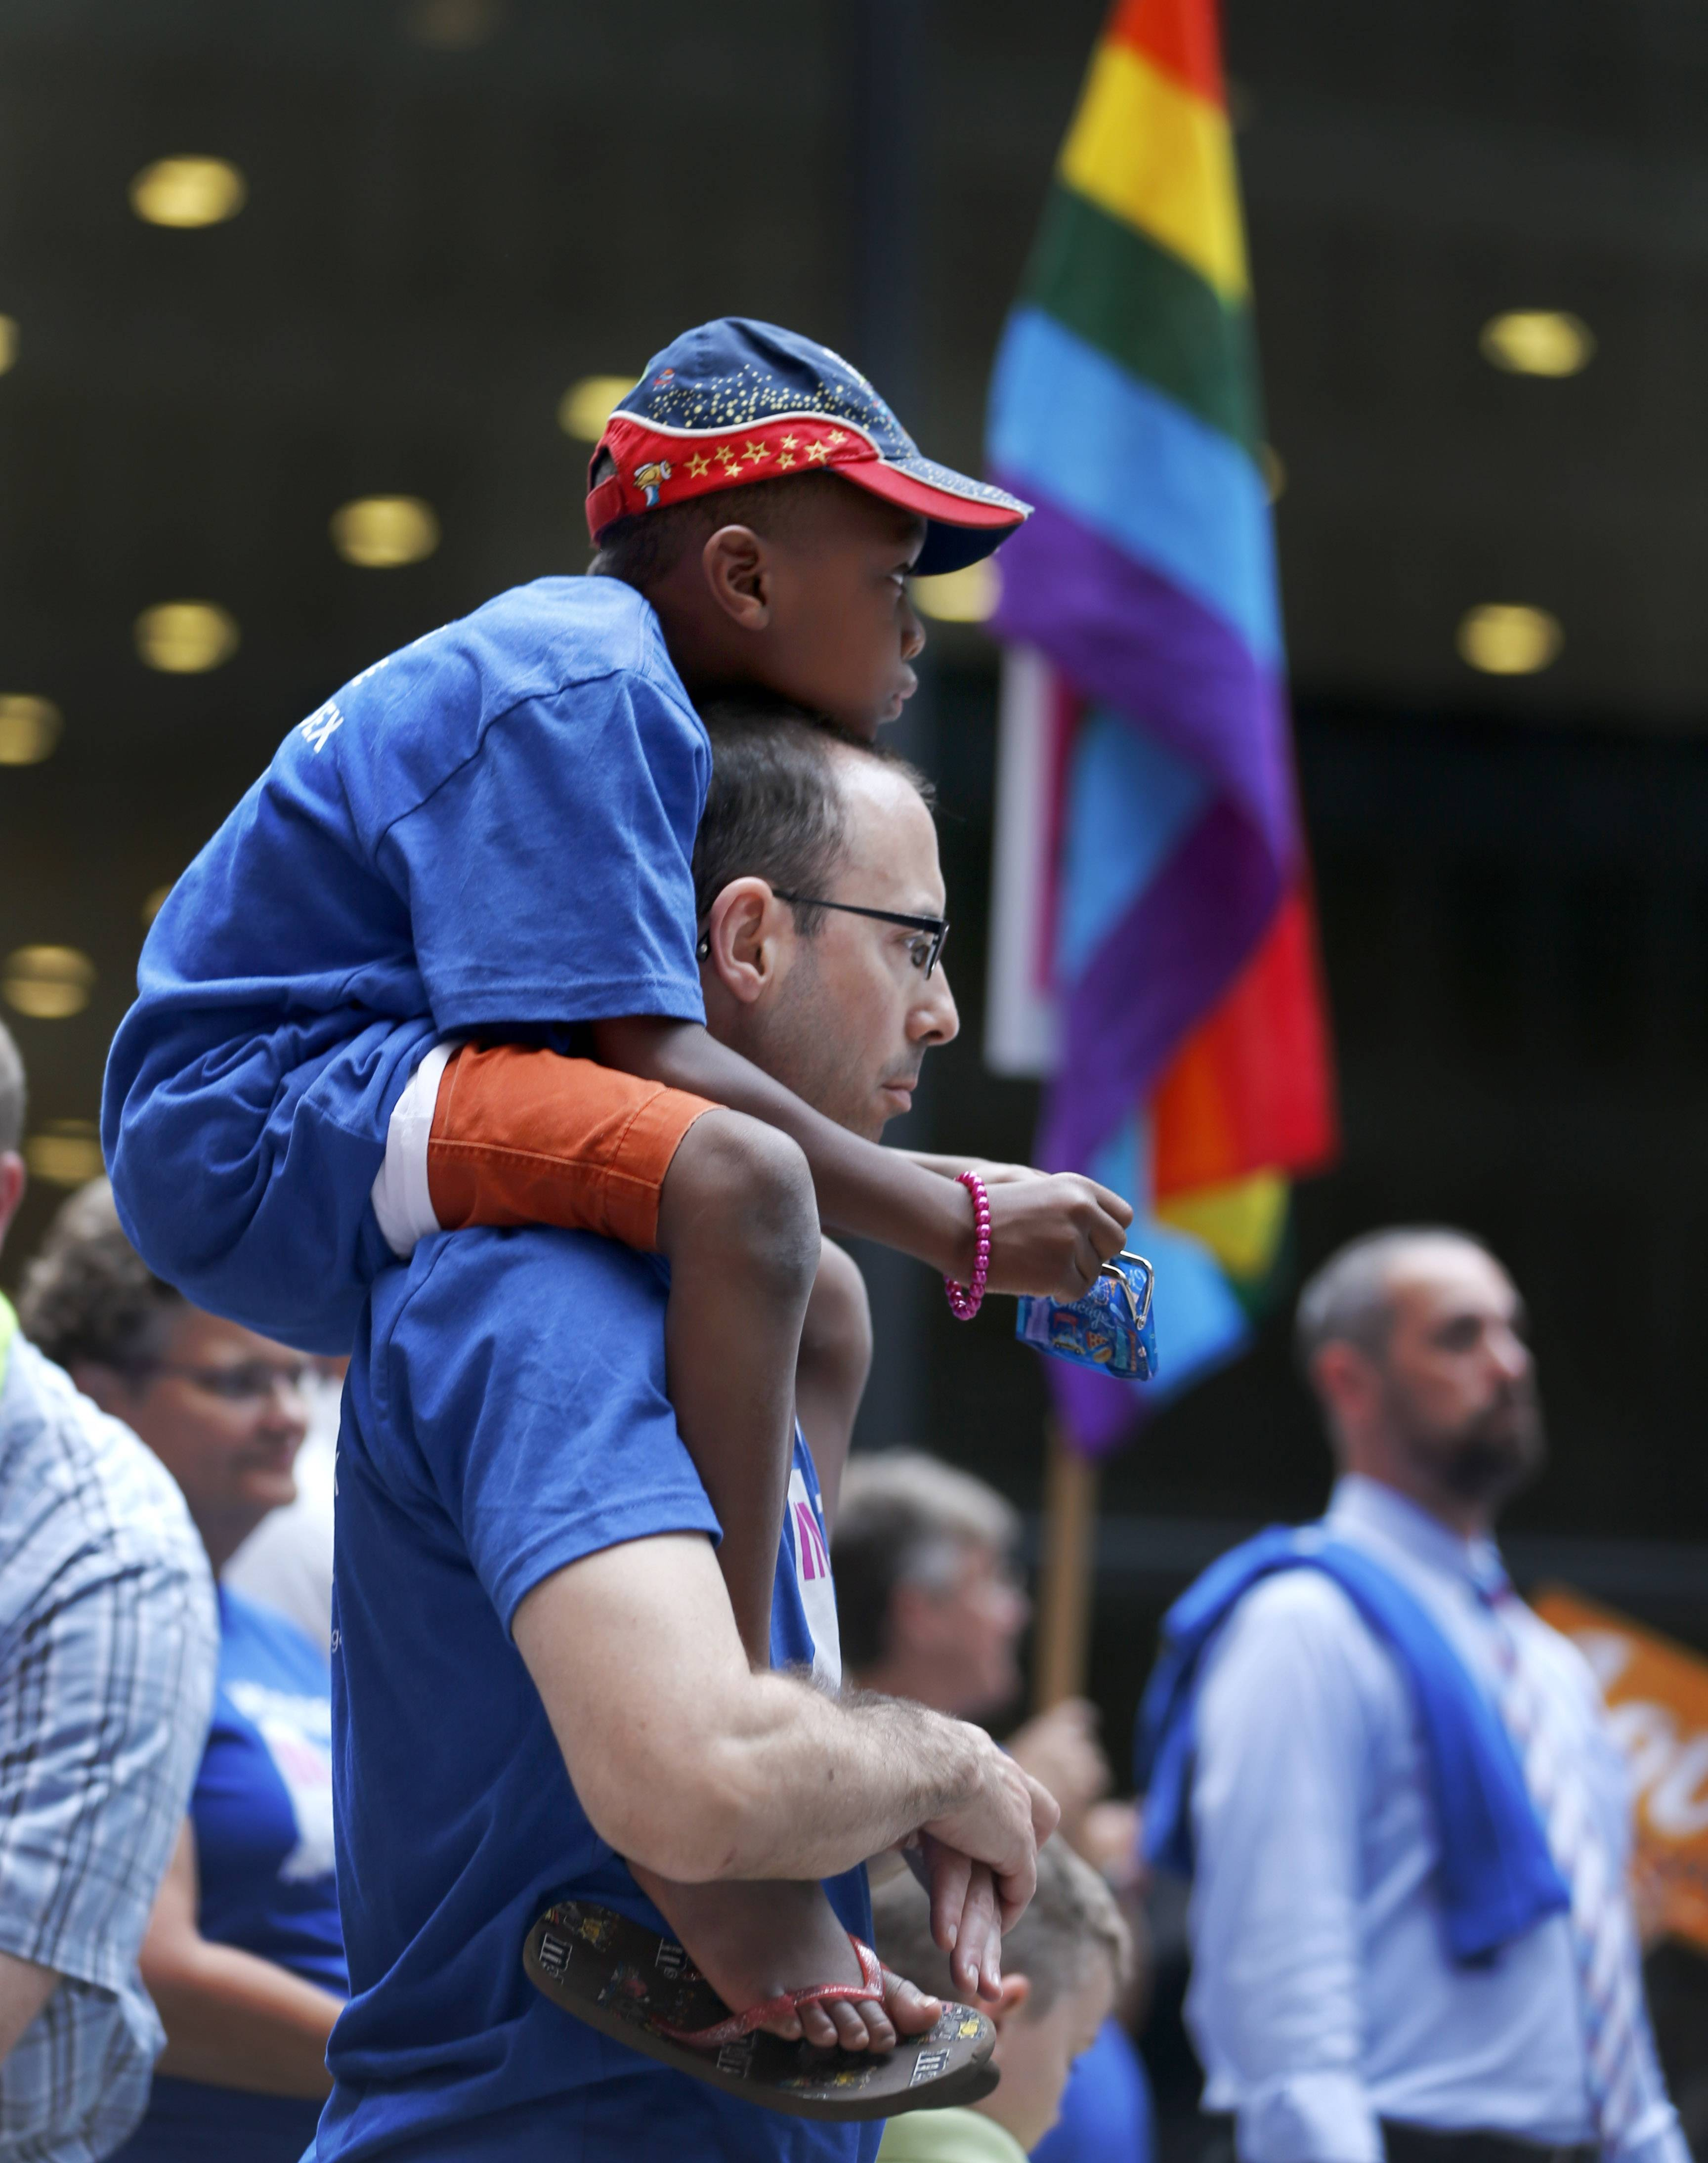 George Sloan, from Chicago, holds his son Sloan D'Souza on his shoulders as they attend a rally in support of gay marriage in Wisconsin and Indiana, at the federal plaza Monday, Aug. 25, 2014, in Chicago. The Chicago-based 7th U.S. Circuit Court of Appeals will hear arguments Tuesday on gay marriage fights from Indiana and Wisconsin, setting the stage for one ruling. Each case deals with whether statewide gay marriage bans violate the Constitution.